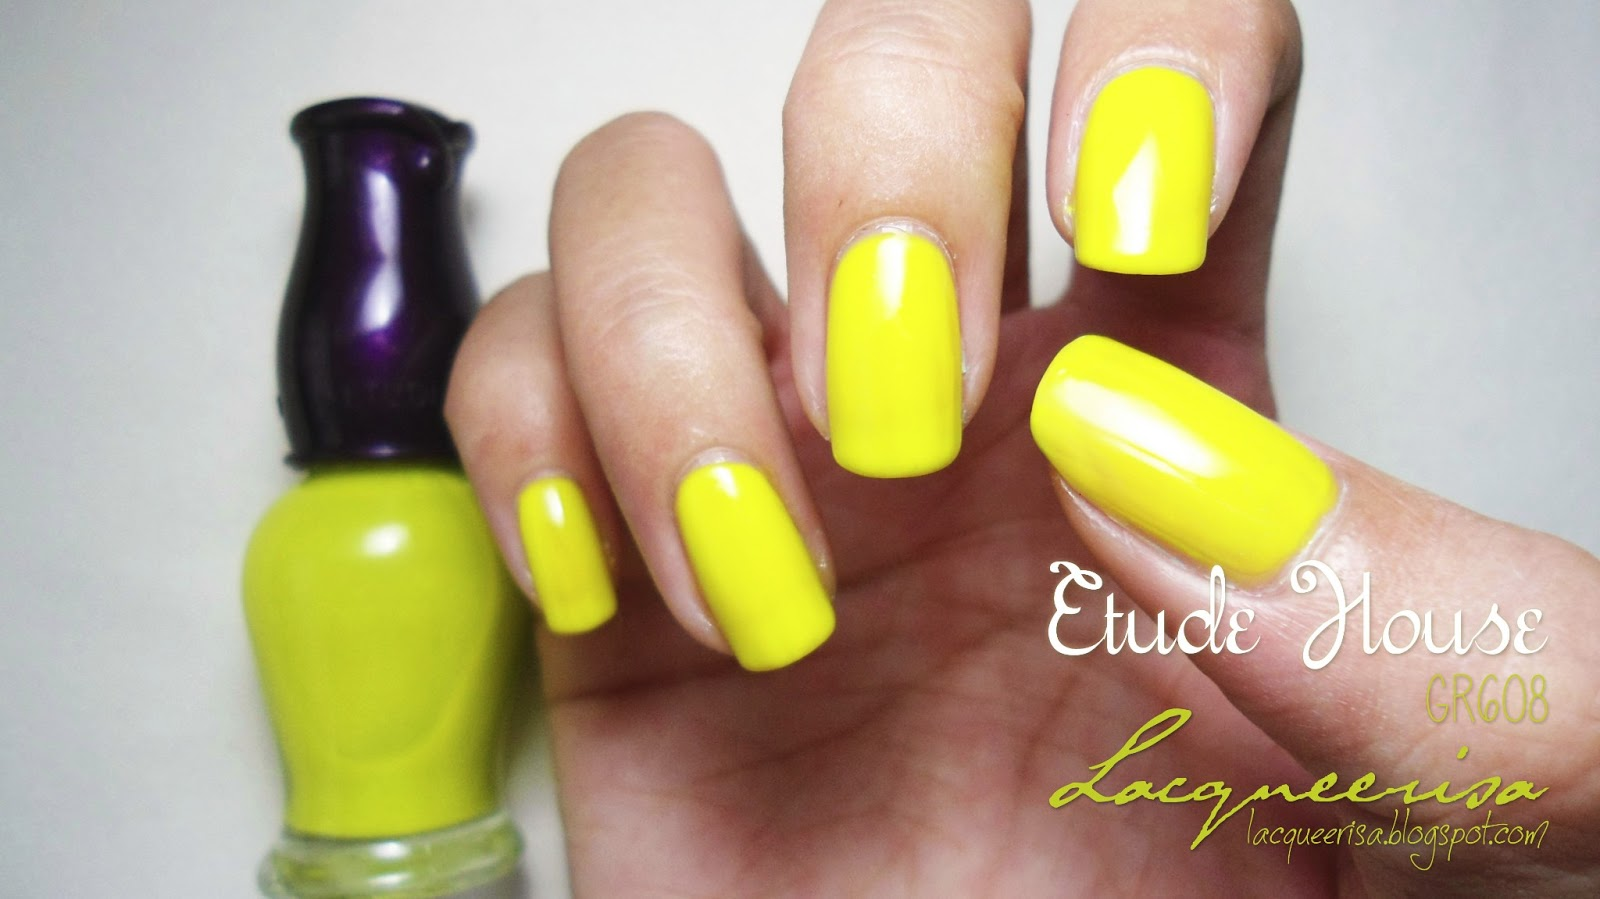 Lacqueerisa: Etude House GR608